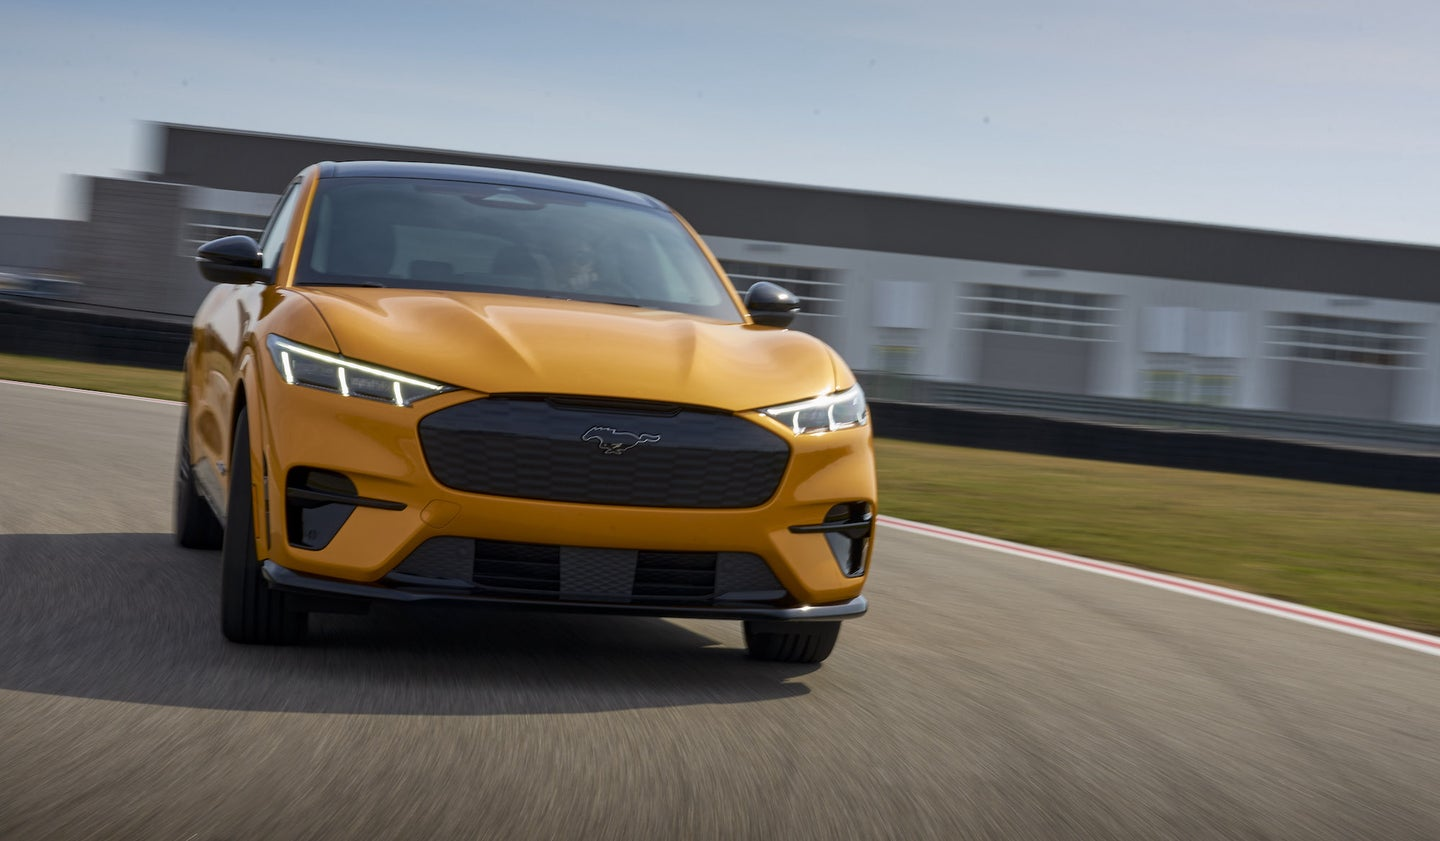 Ford's first follow-up Mustang Mach-E models add even more speed